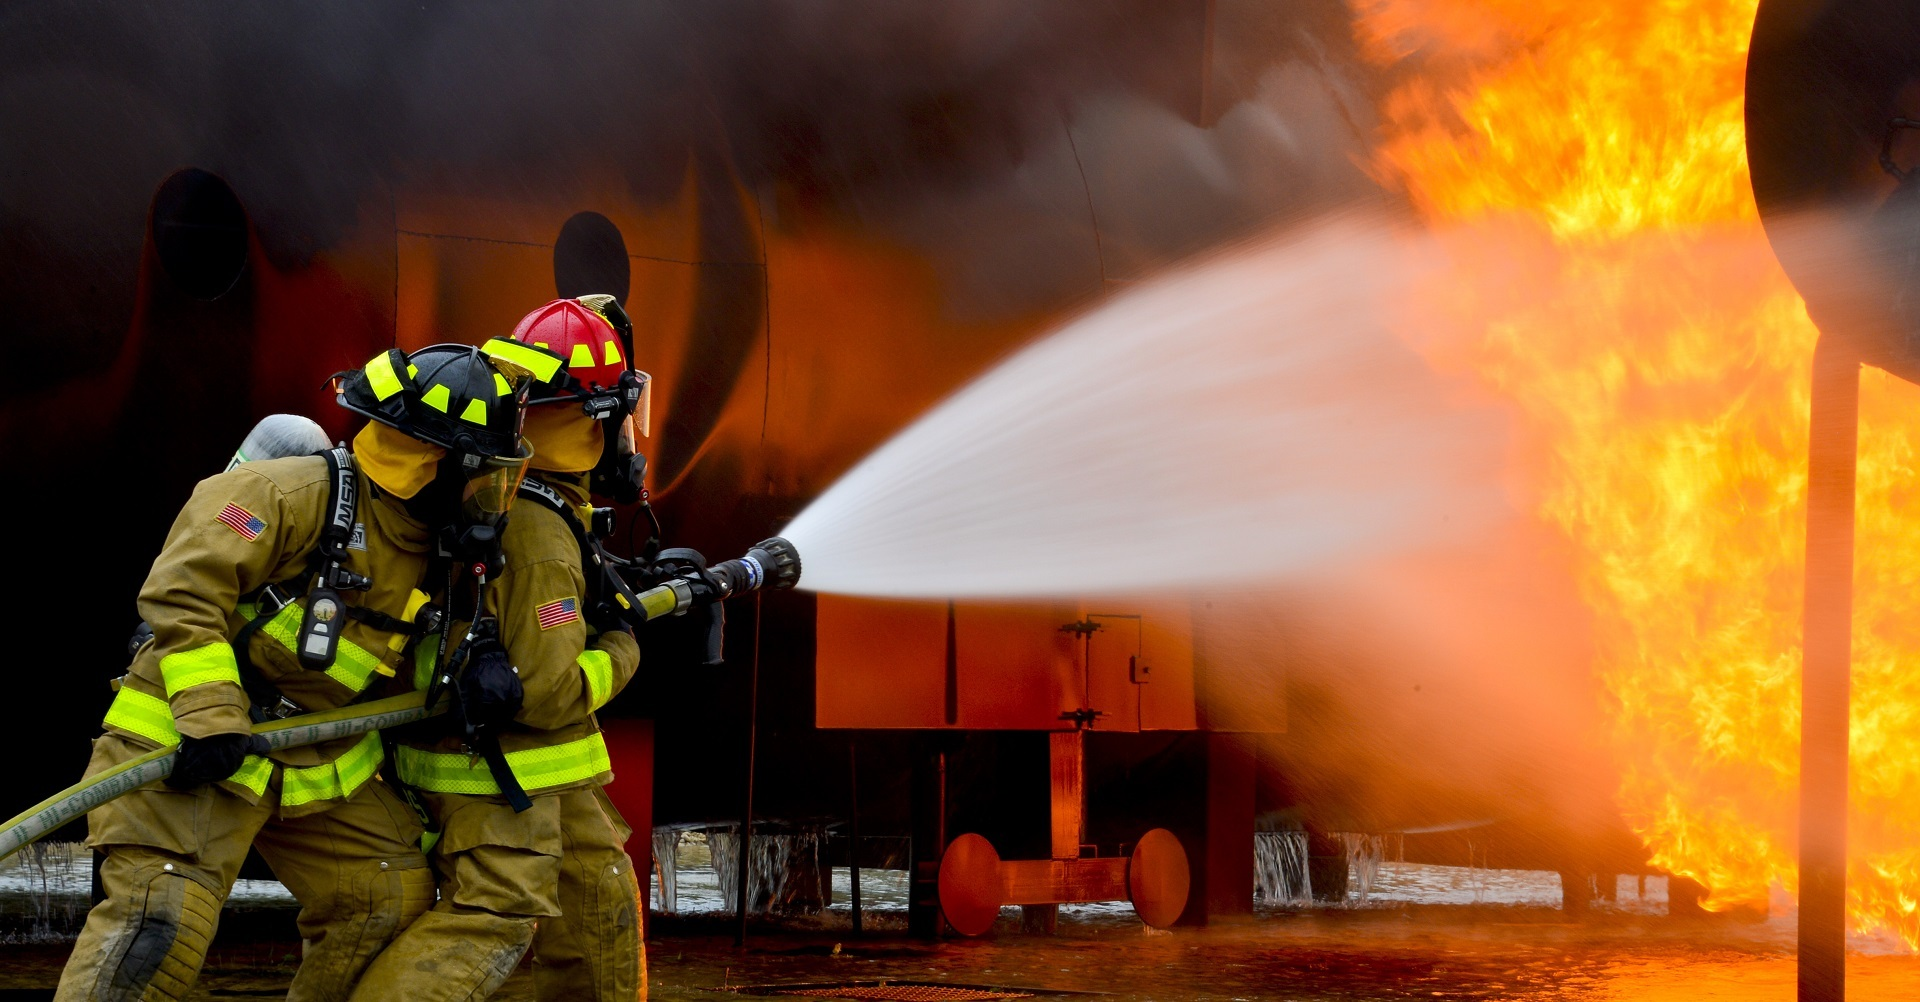 How To Promote Fire Safety In The Workplace